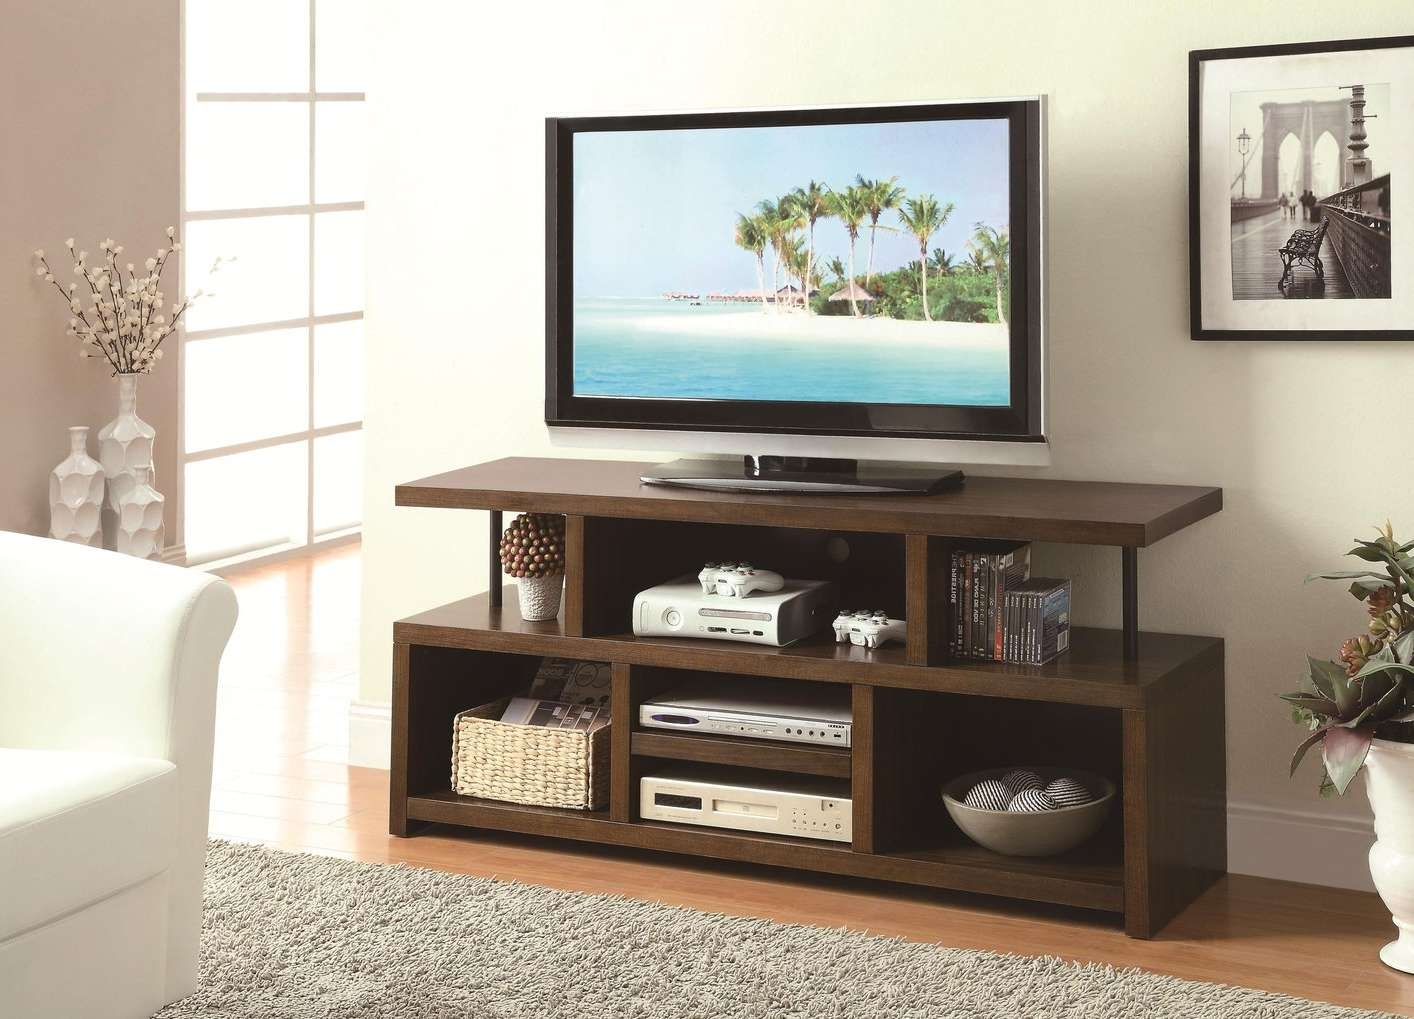 Light Wood Tv Stand Simple Room With Ikea Besta Media Cabinet Of For Open Shelf Tv Stands (View 15 of 15)